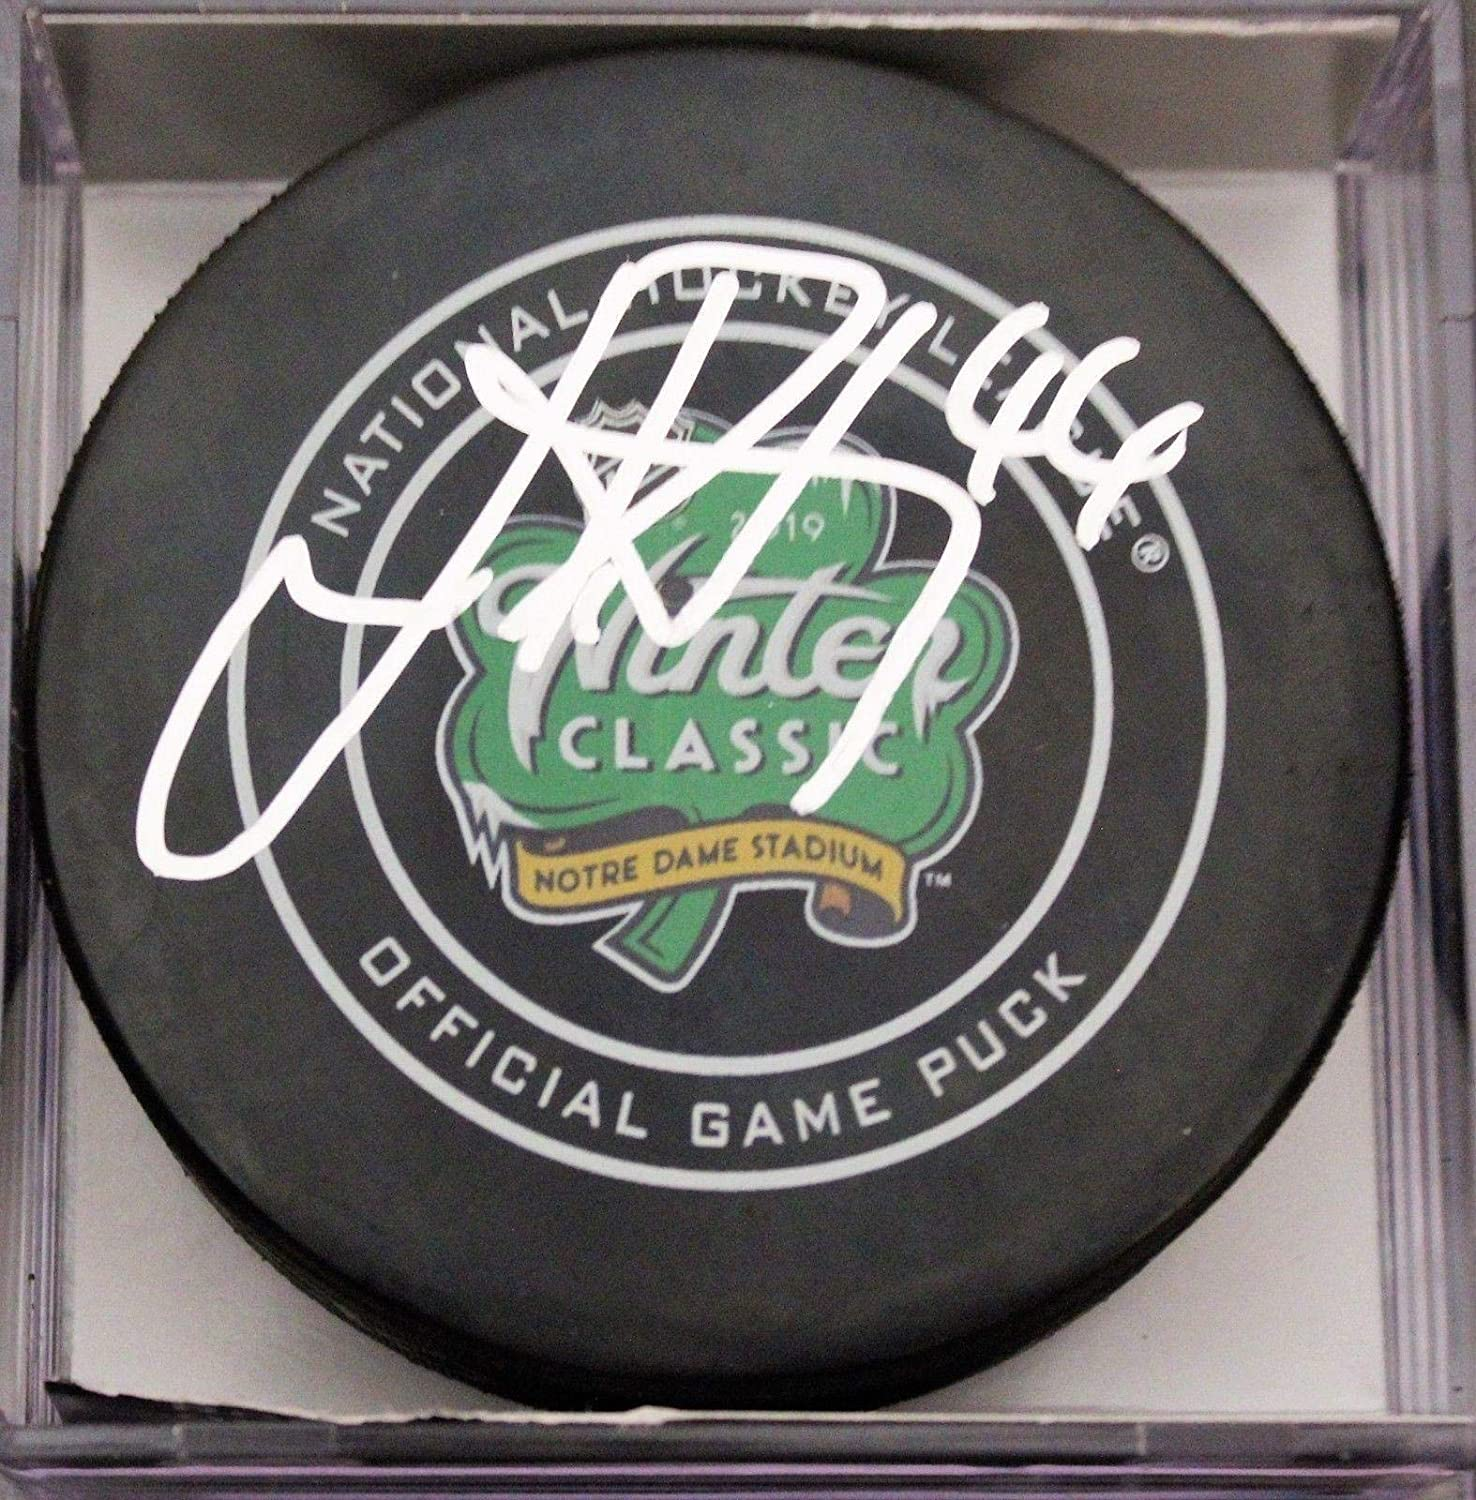 Jan Rutta Autographed Hockey Puck - 2019 Winter Classic Official w COA - Autographed NHL Pucks